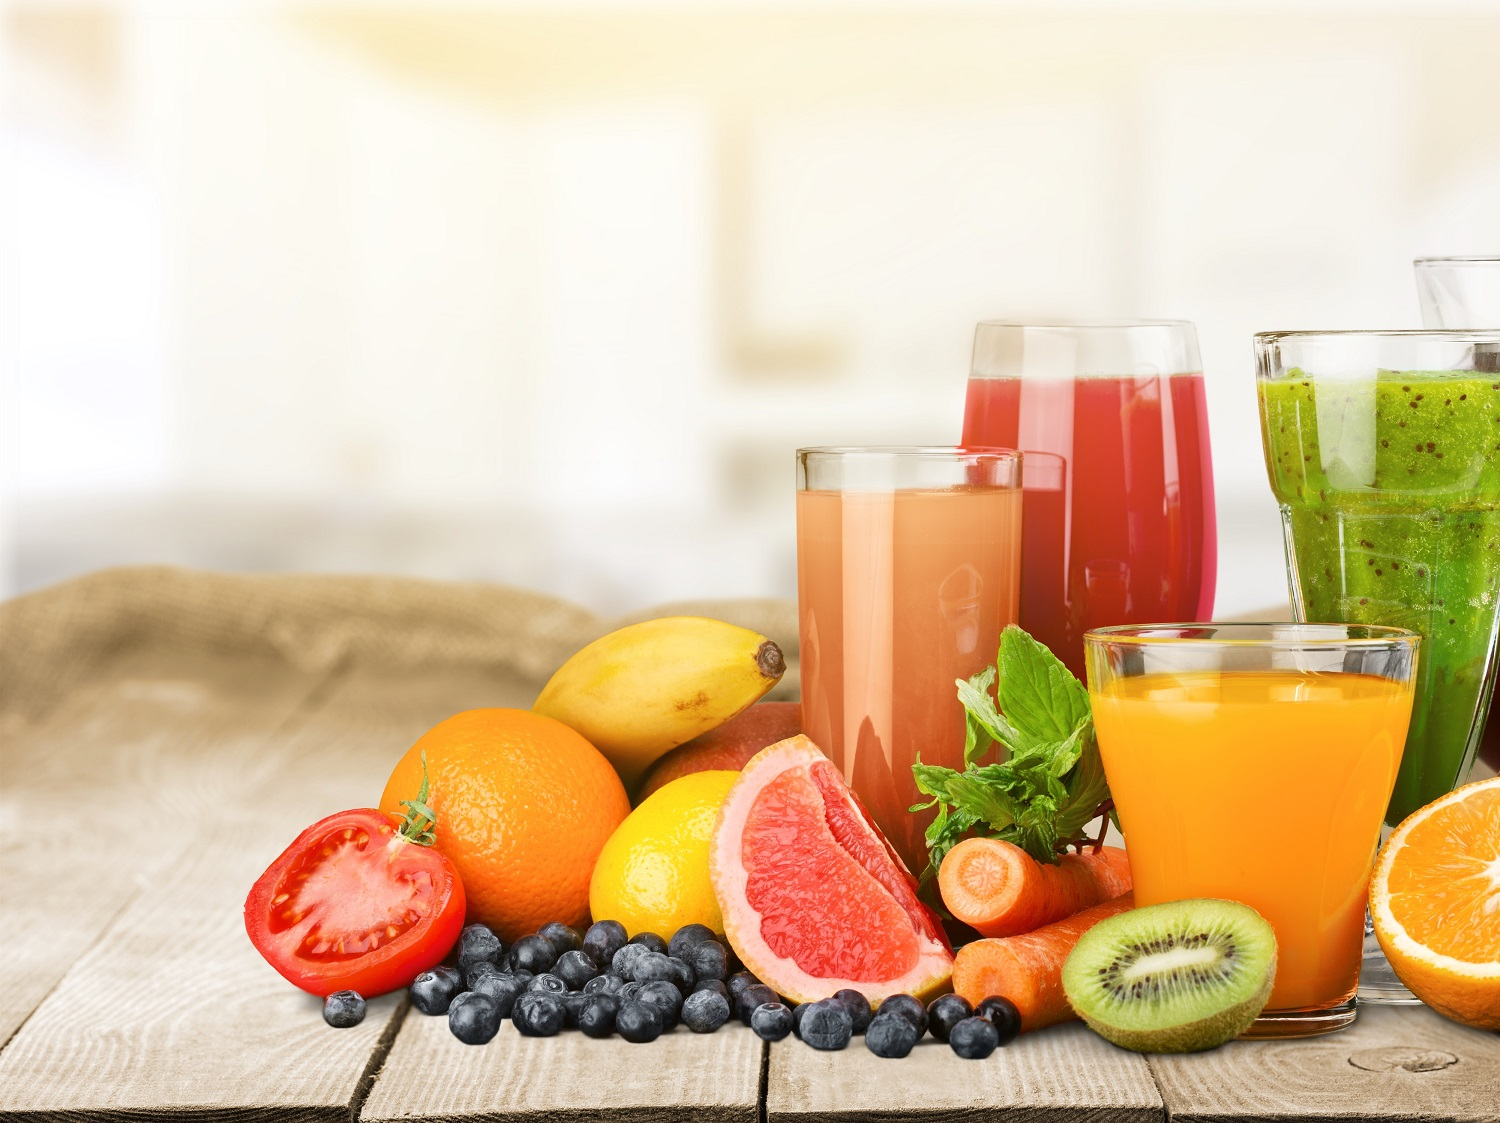 fruits and juices